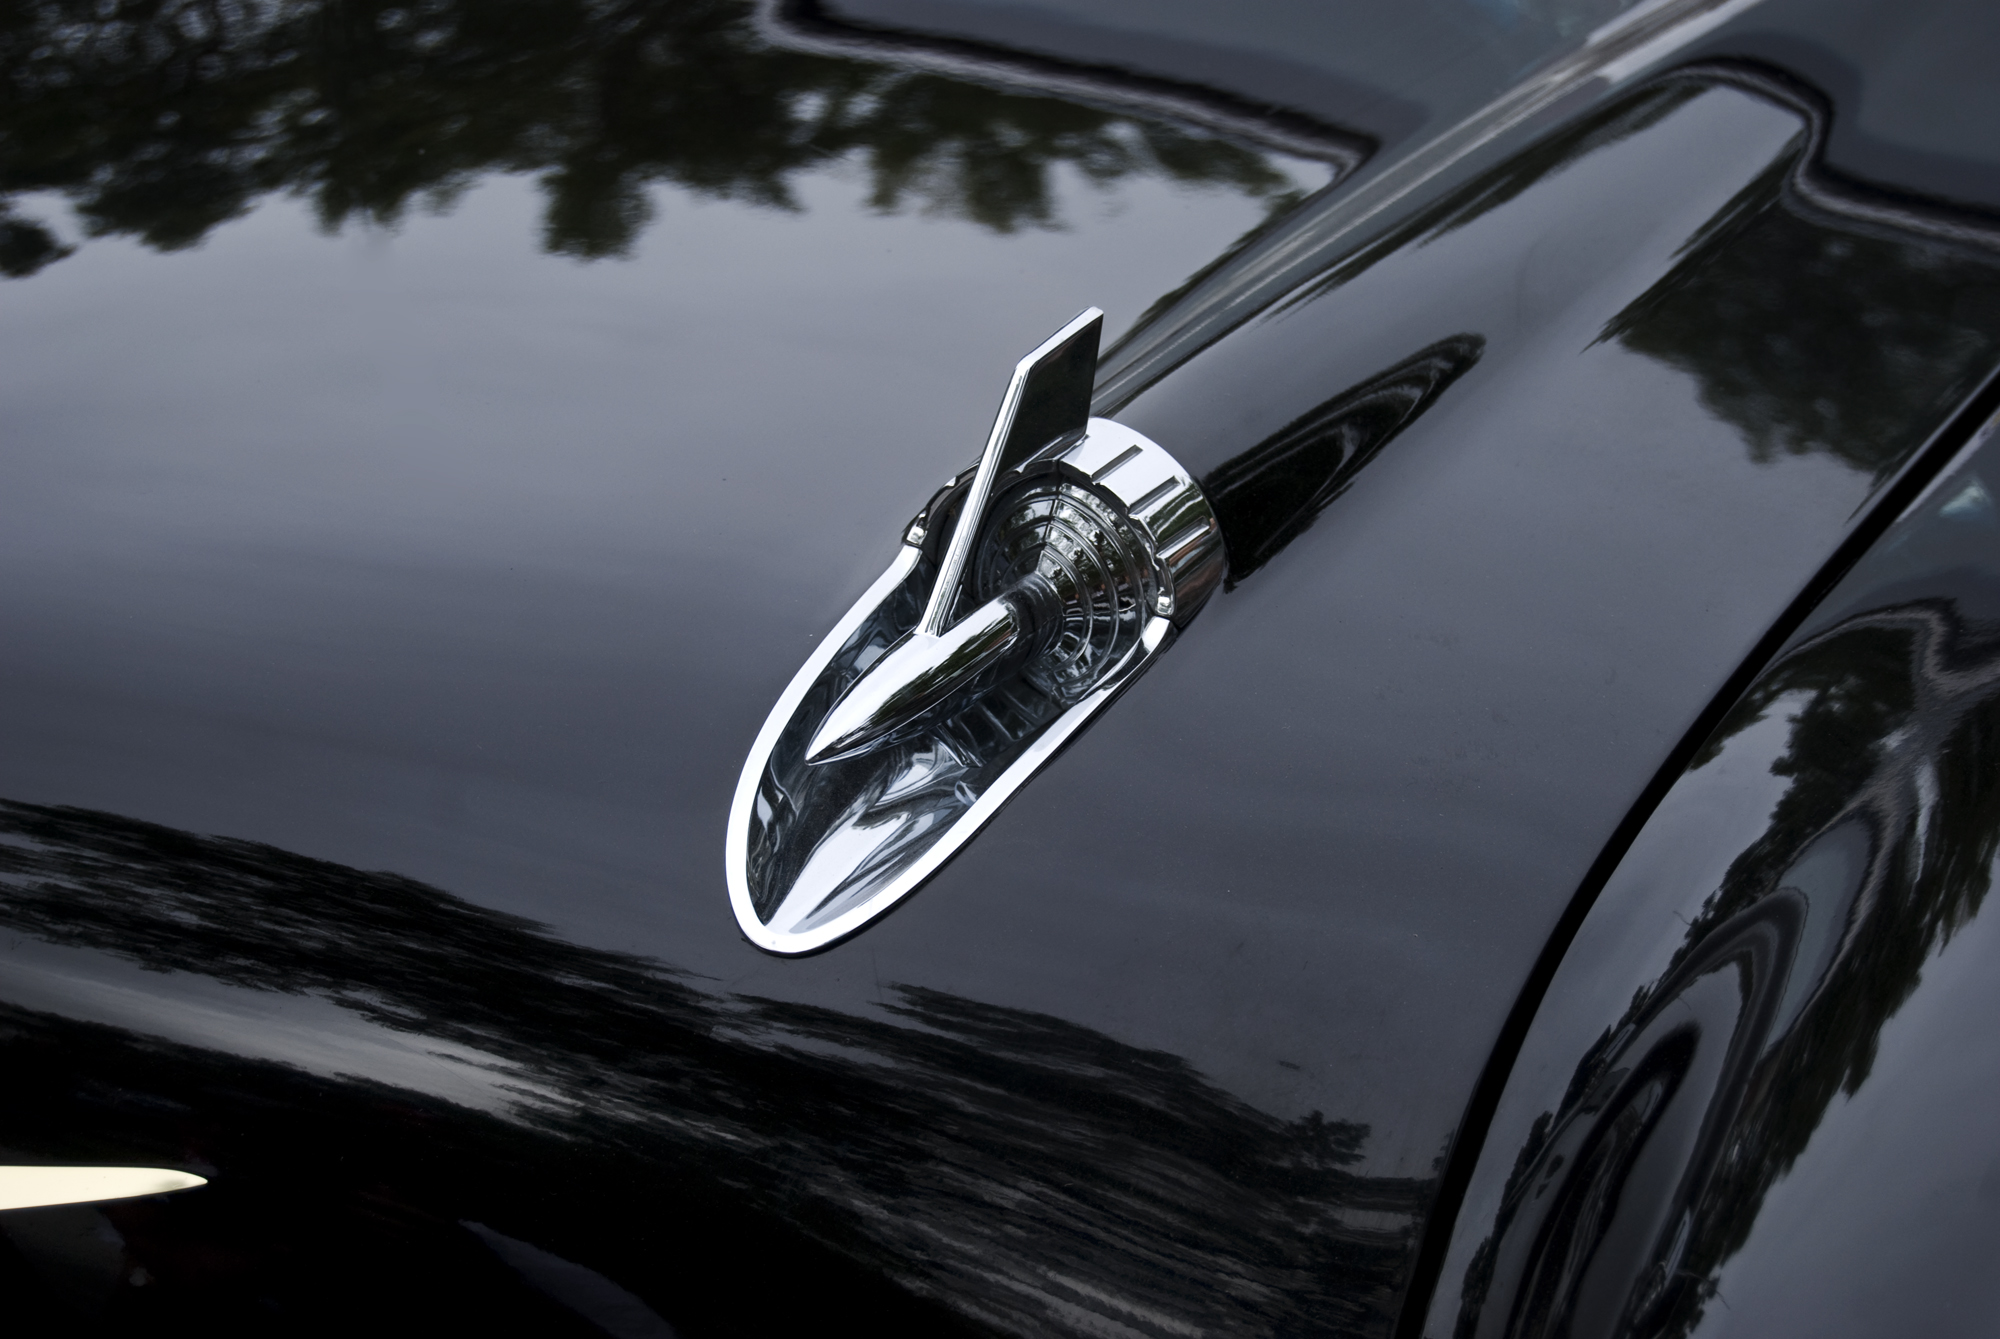 Lalique hood ornaments - 42 Best Images About Hood Ornaments On Pinterest Cars Chief And Auction